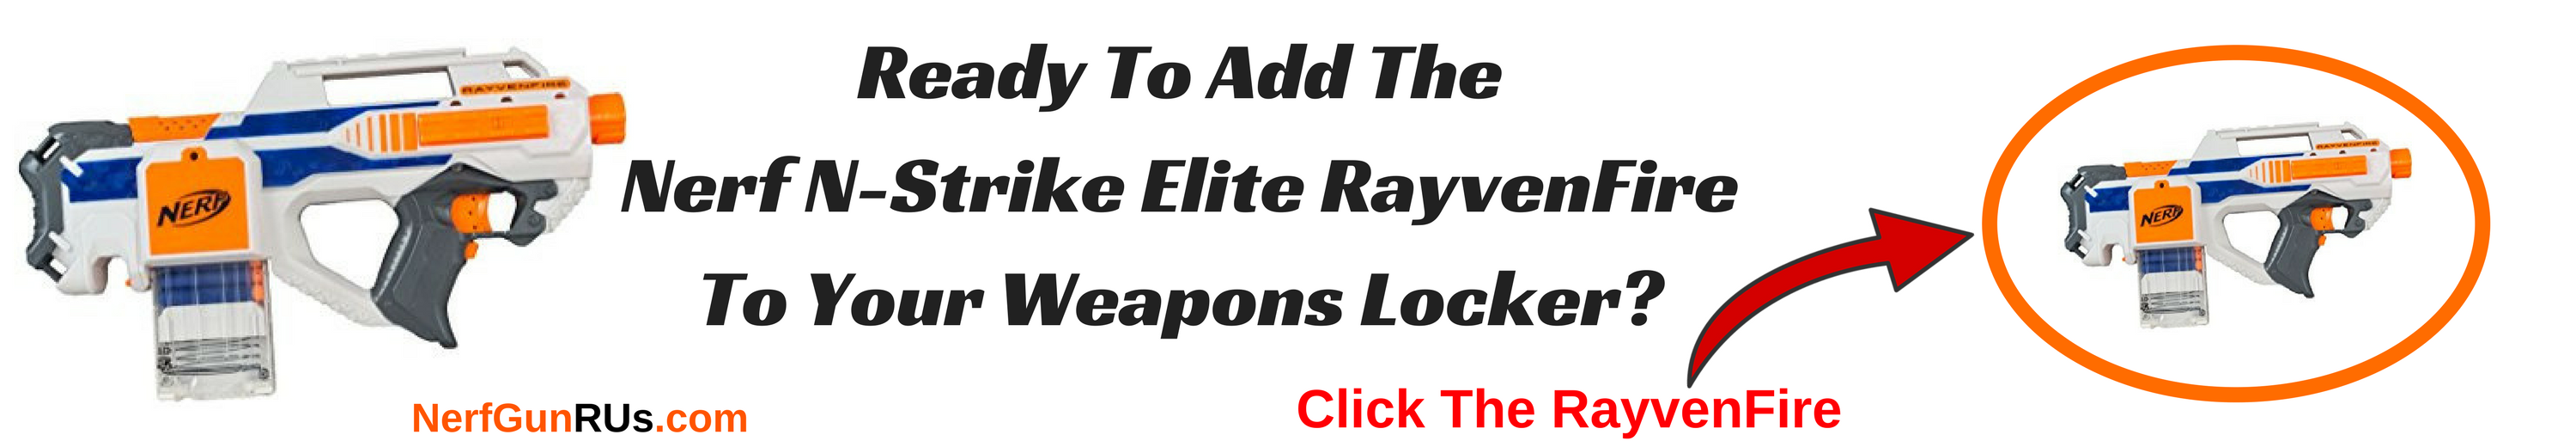 Ready To Add The Nerf N-Strike Elite RayvenFireTo Your Weapons Locker